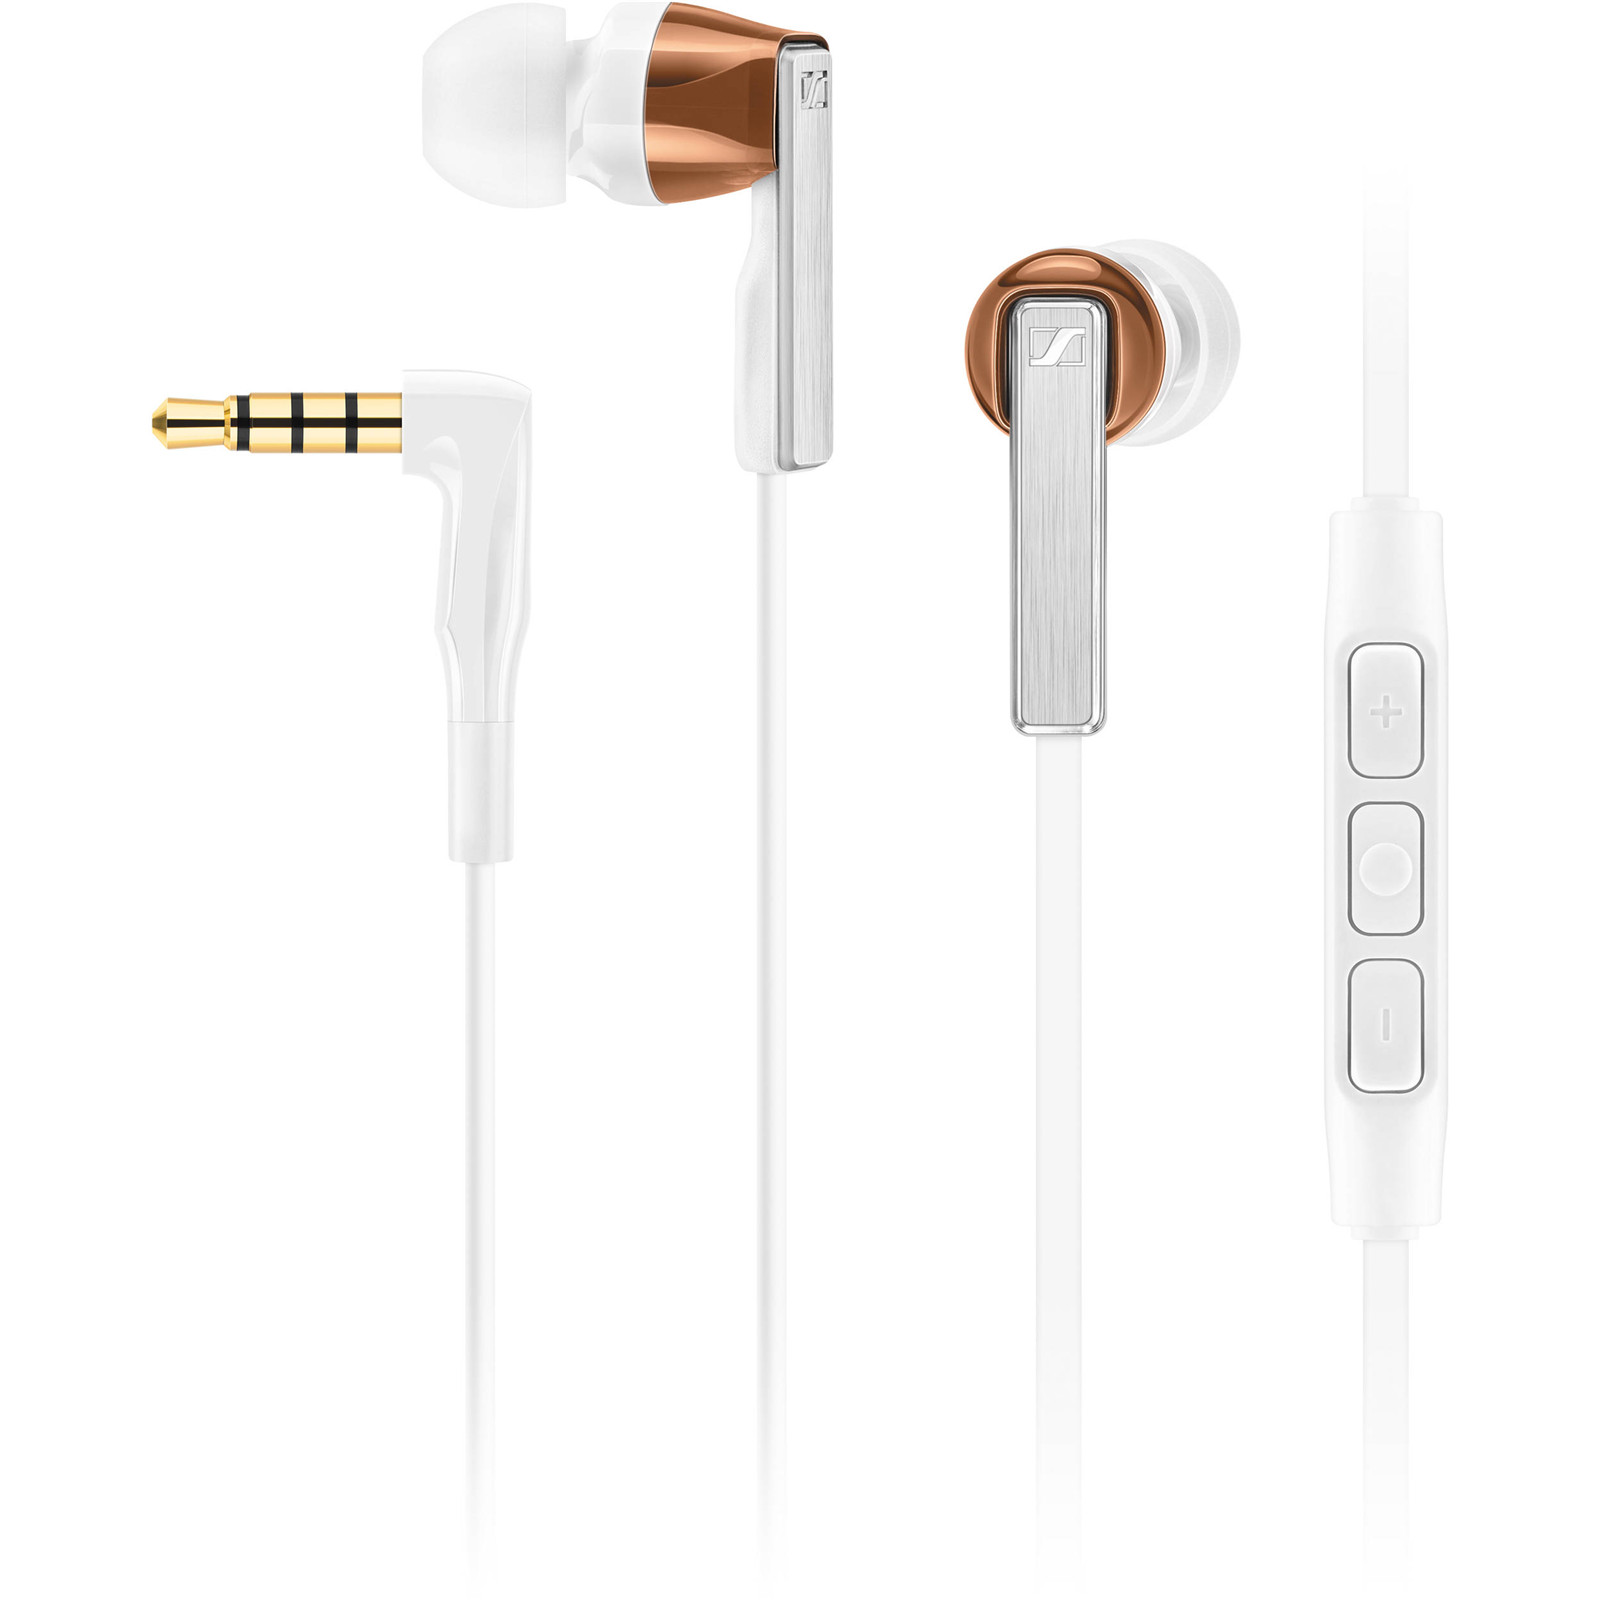 Buy The Sennheiser Cx 500i In Ear Headphones White With Line Earphone Sport Remote For Apple Ios Devices